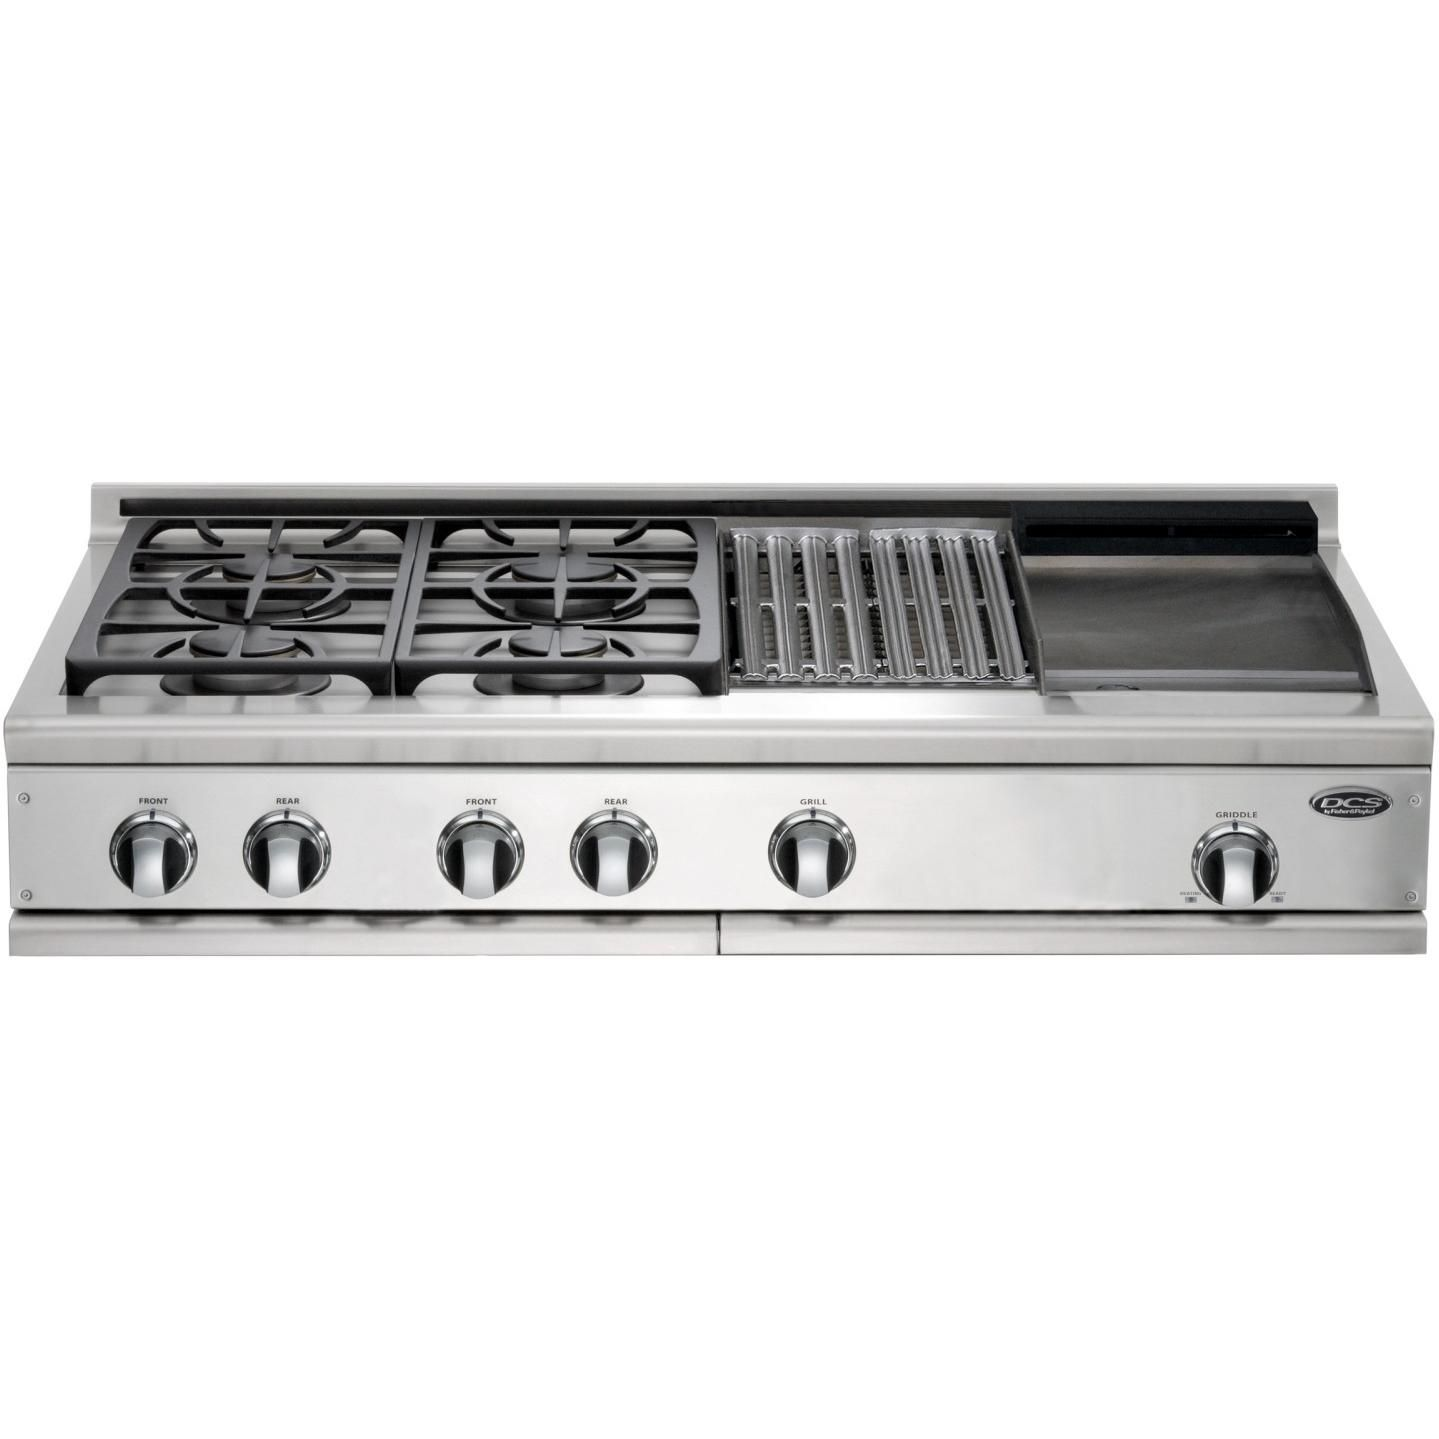 Cooktop Gas Stoves Dcs Cooktops 48 Inch Propane Gas Cooktop With Griddle